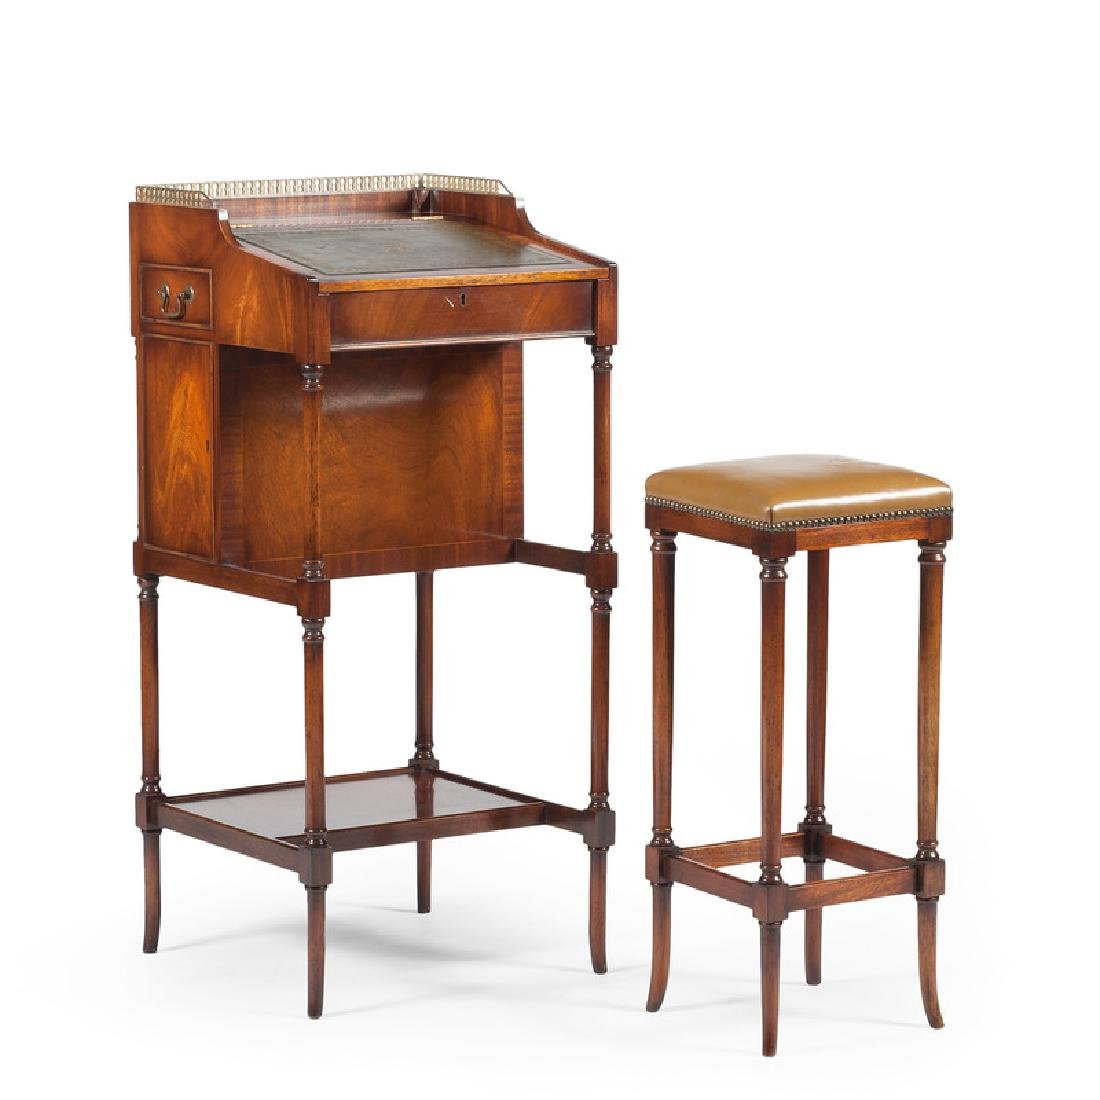 English Mahogany Desk with Stool